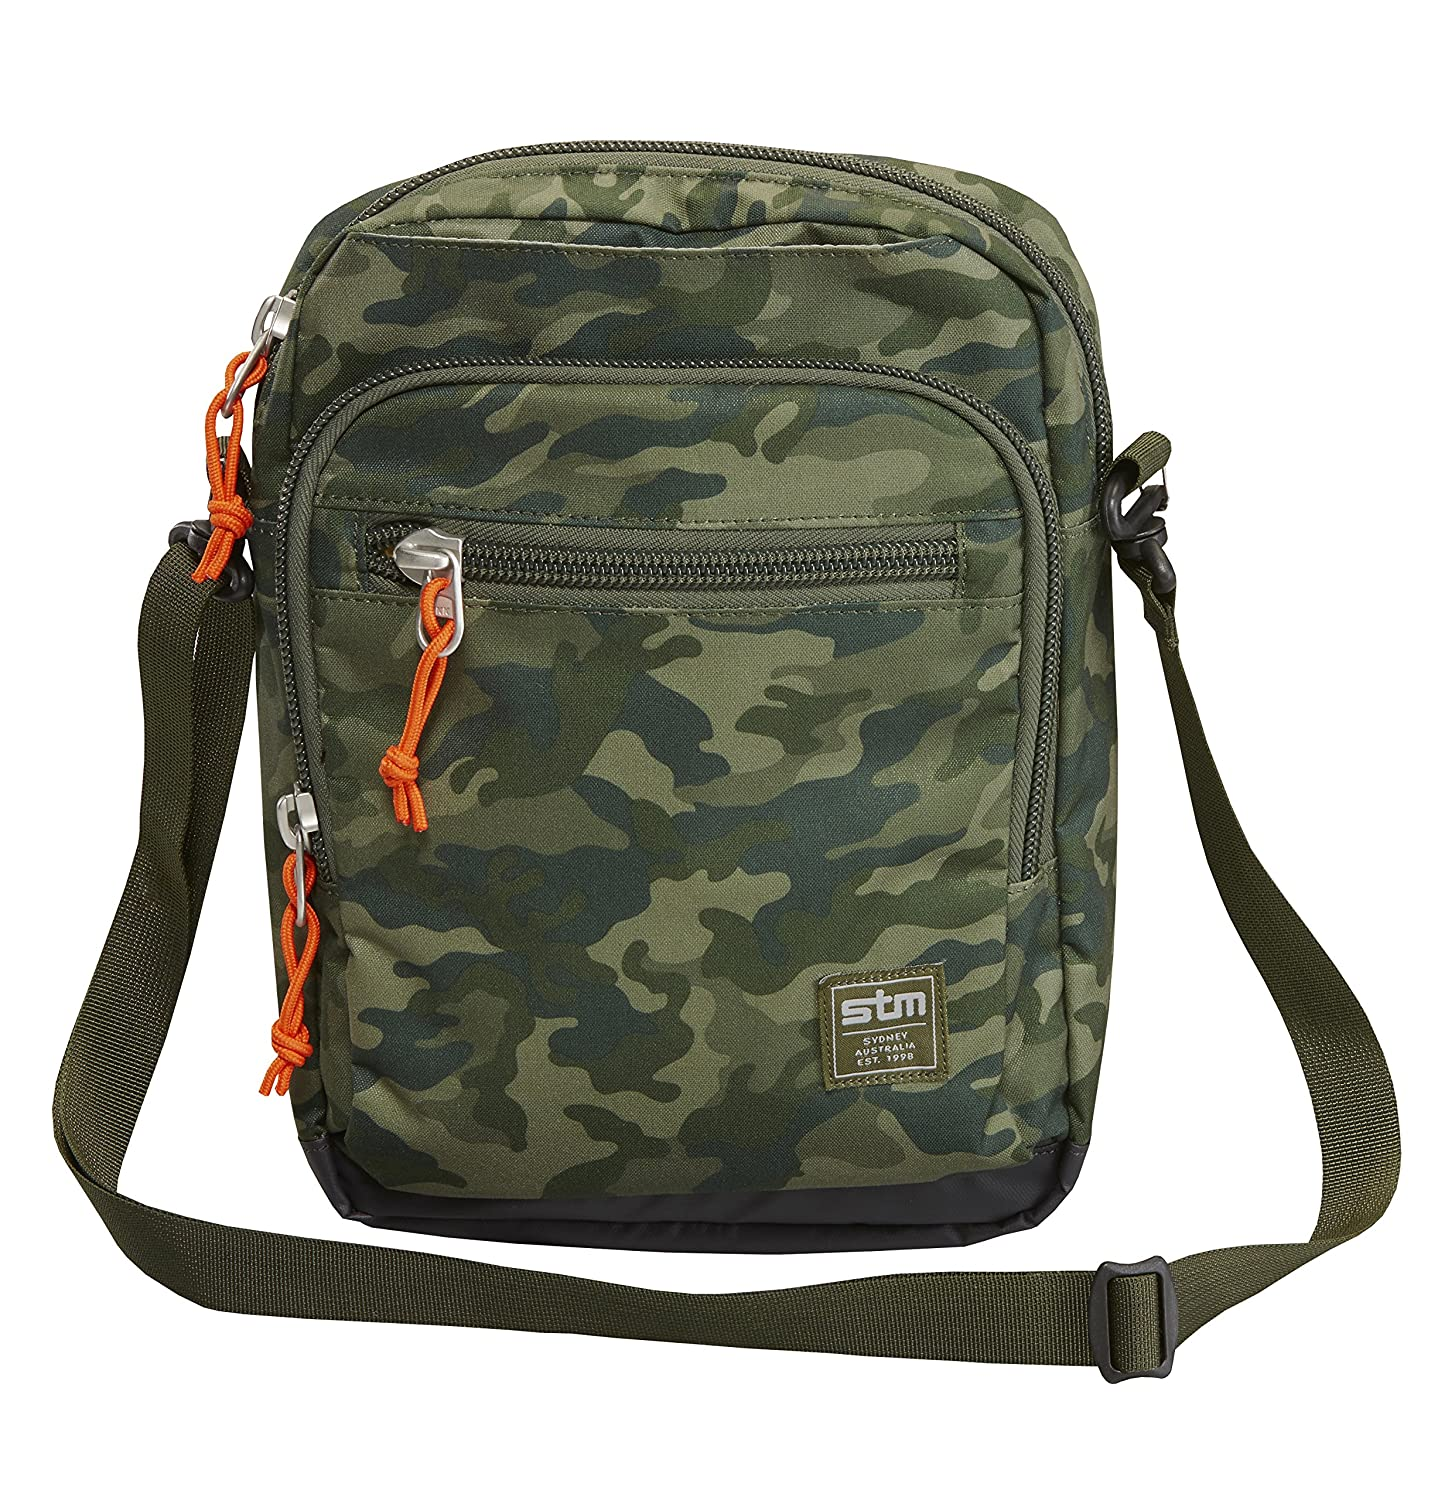 STM Link Tablet Shoulder Bag, for 8 to 10-Inch Tablets - Green Camo (stm-212-039J-36)